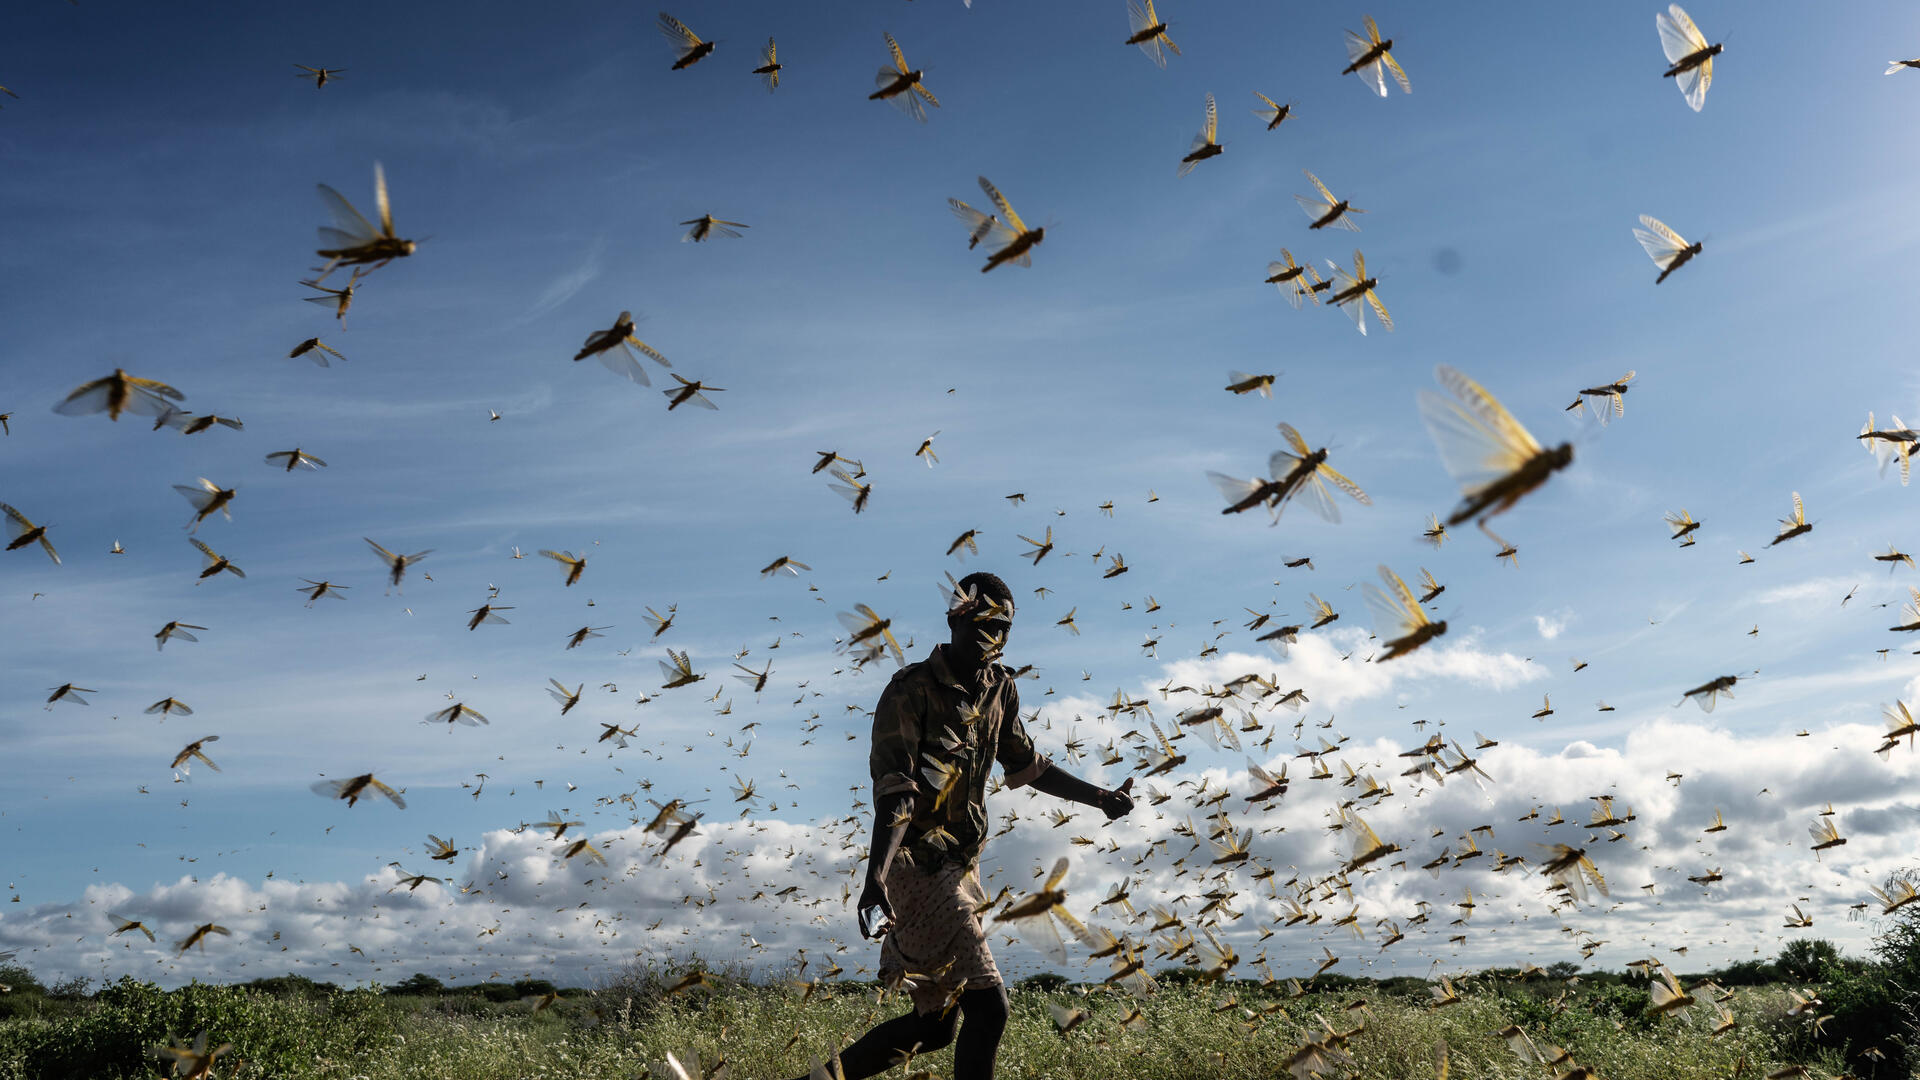 A man chases away a swarm of desert locusts in a field in Kenya.